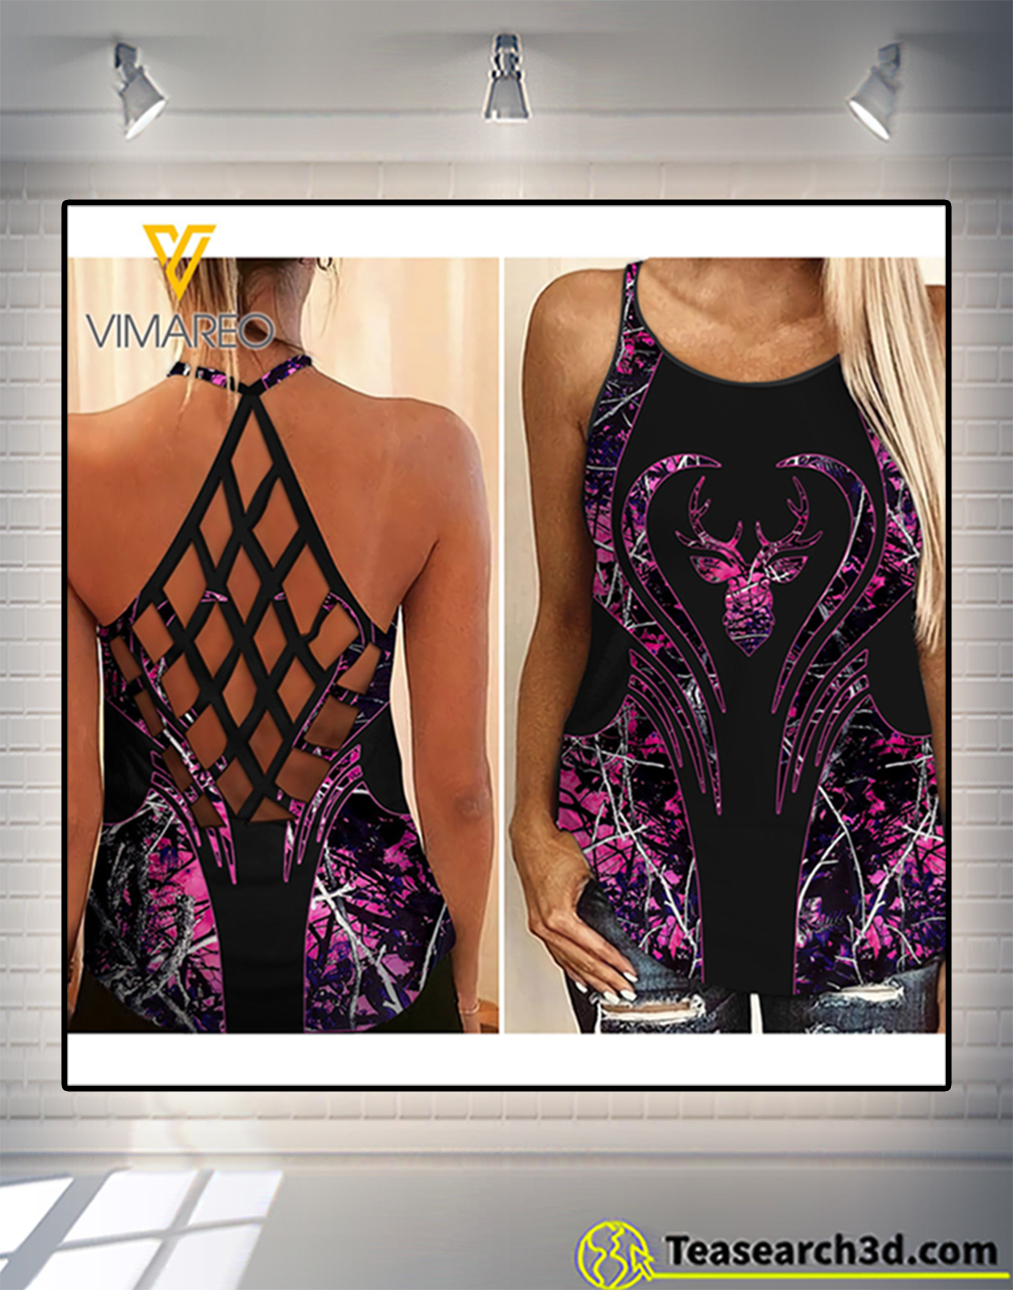 Hunting girl criss cross open back camisole tank top